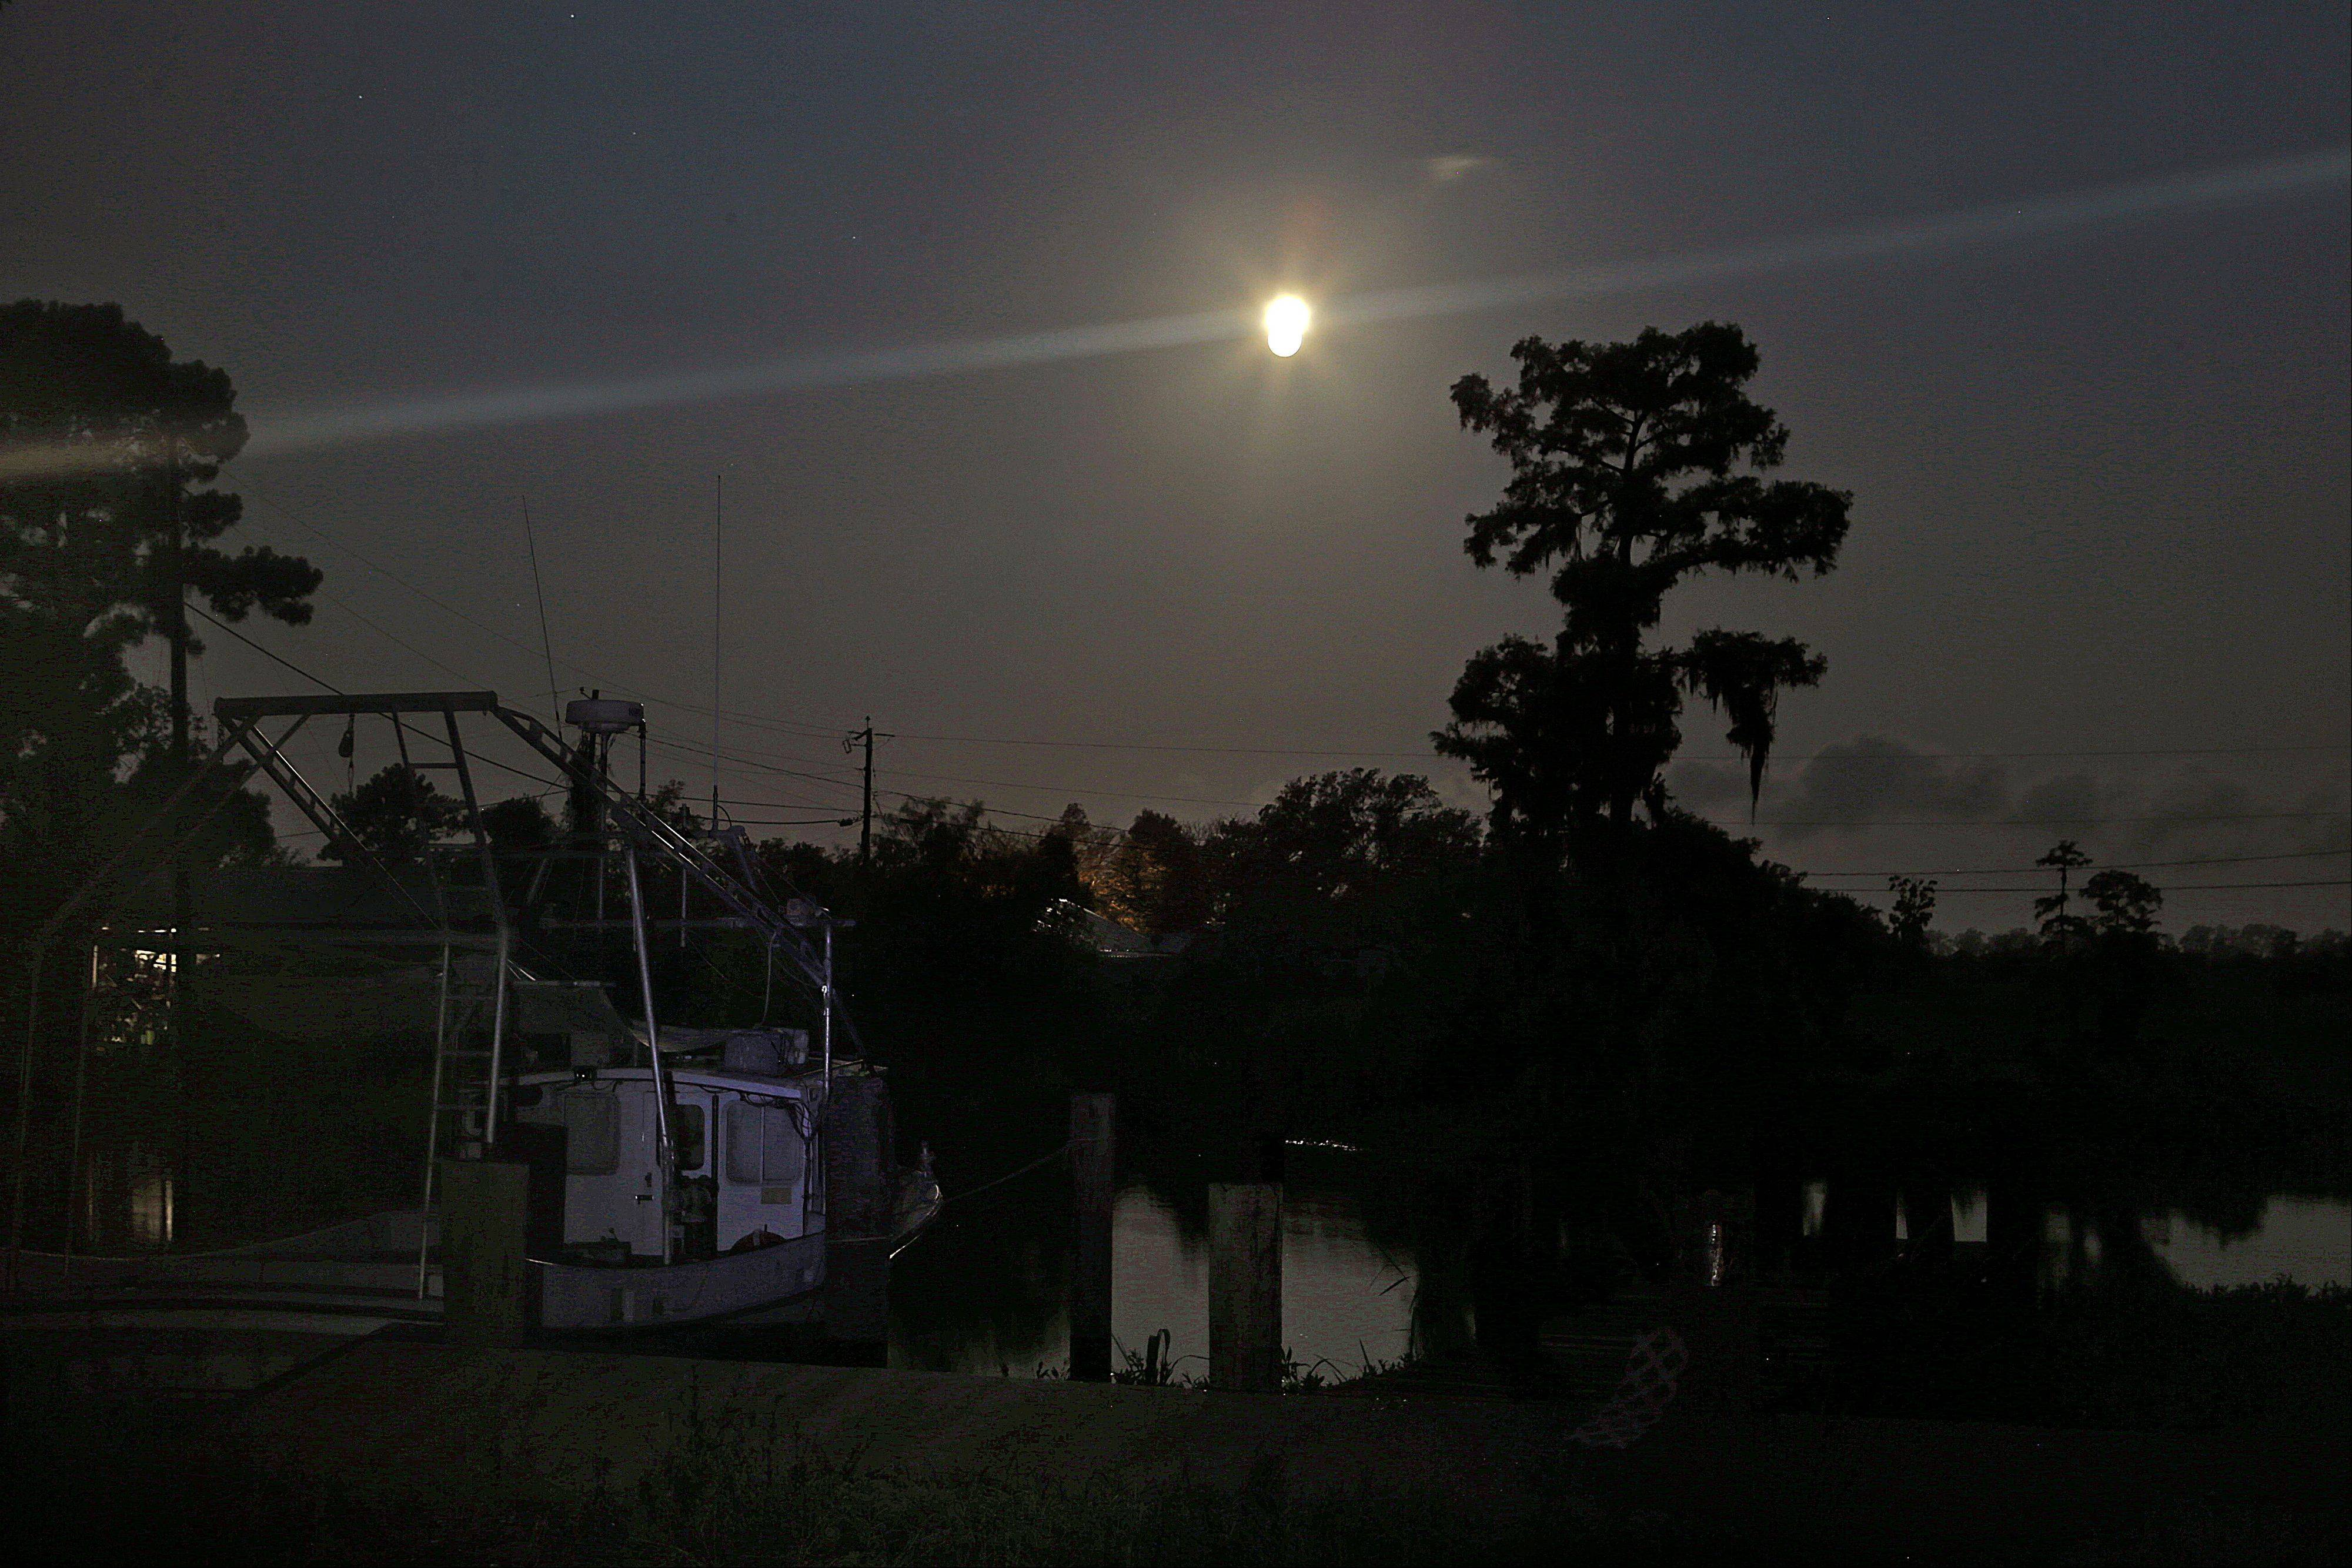 The larger-than-normal full moon referred to as Supermoon is seen setting beyond fishing camps in Akers, La., Sunday, June 23, 2013.